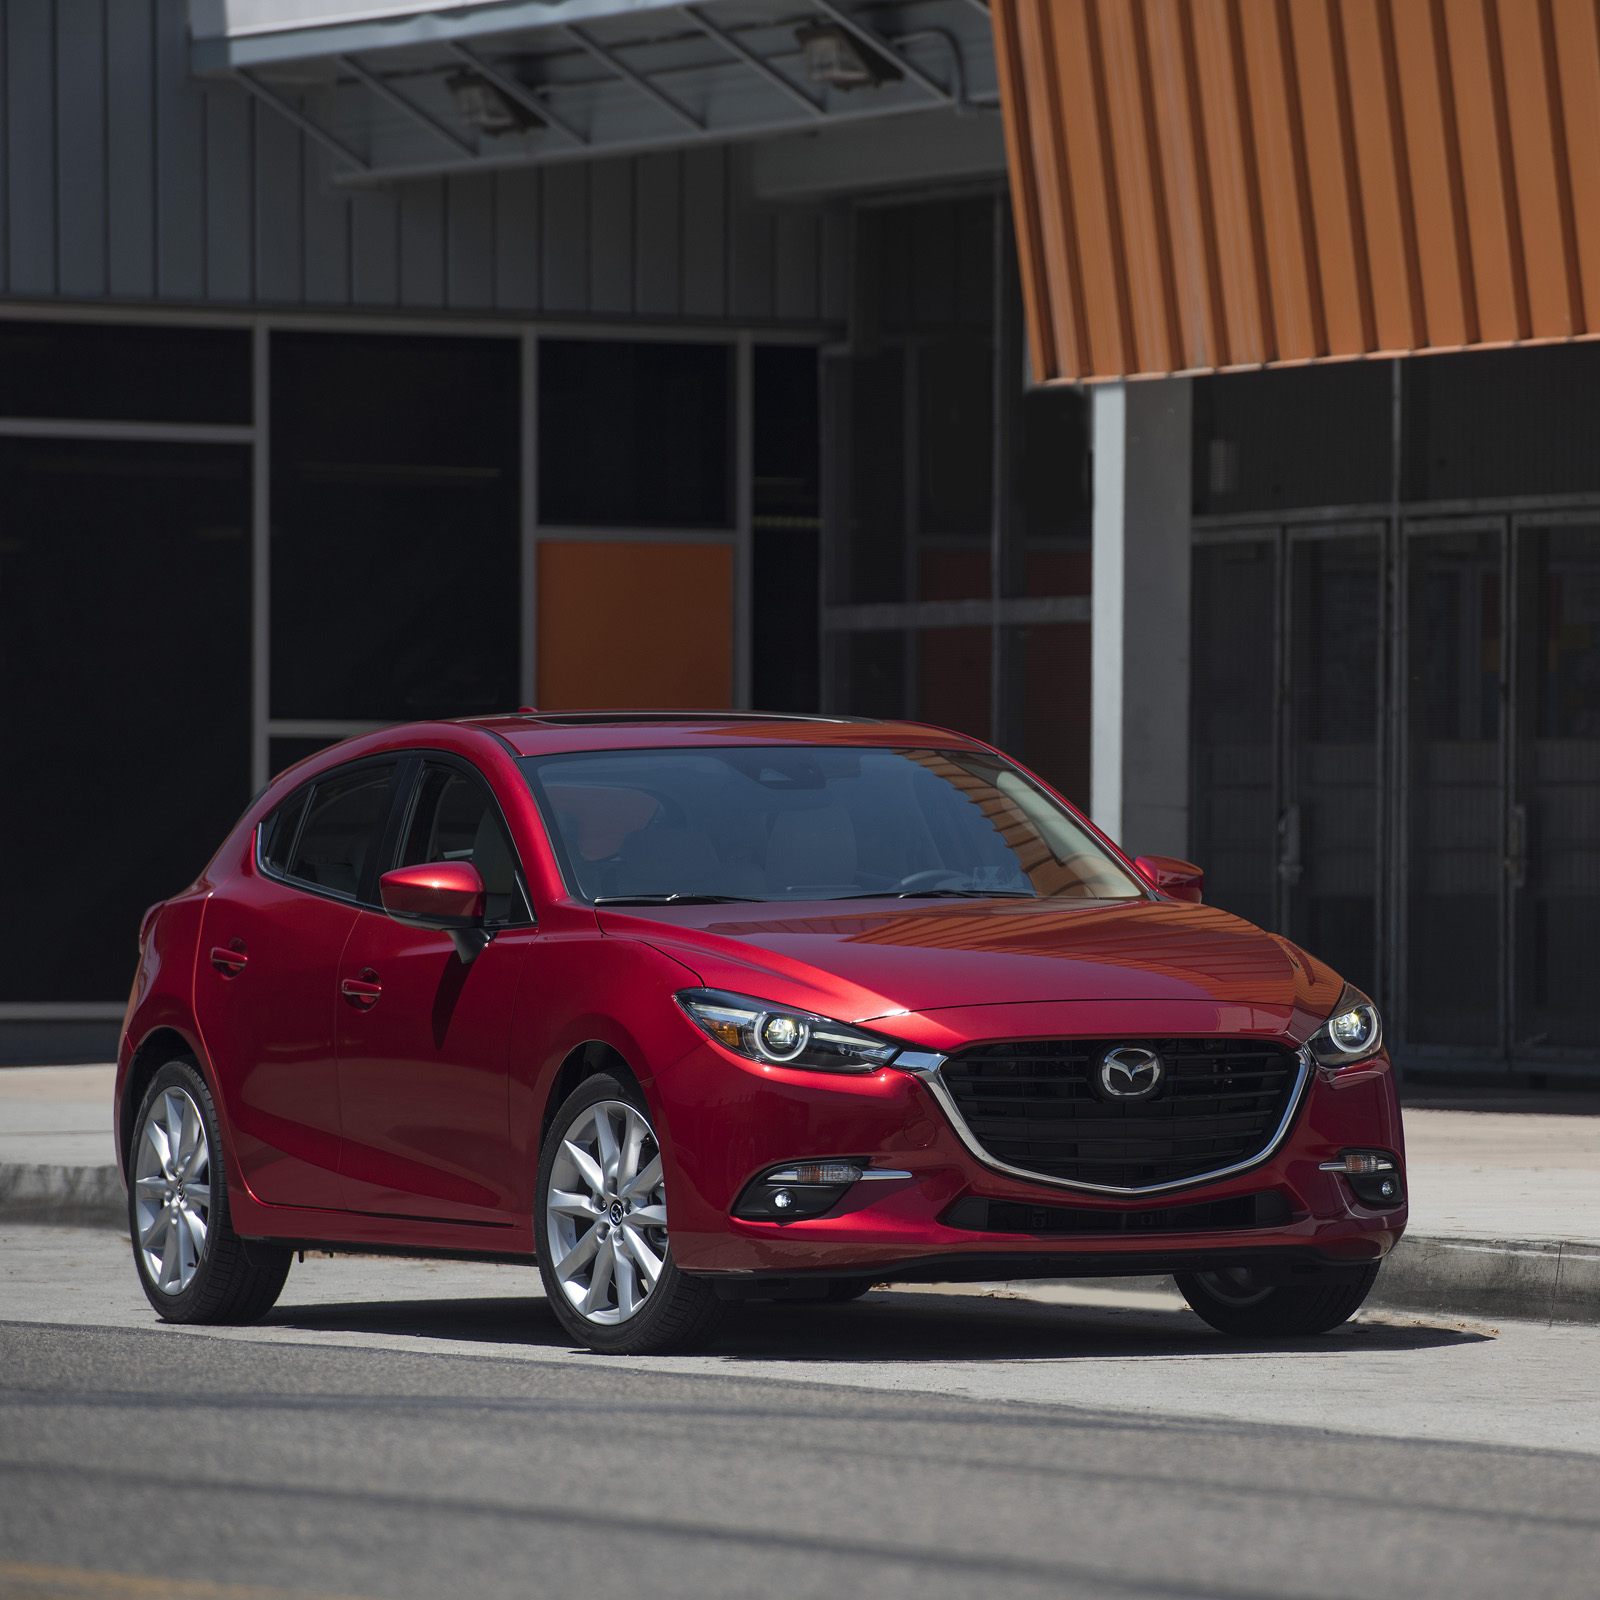 2017 Mazda3 Gets Subtle Updates Including G-Vectoring